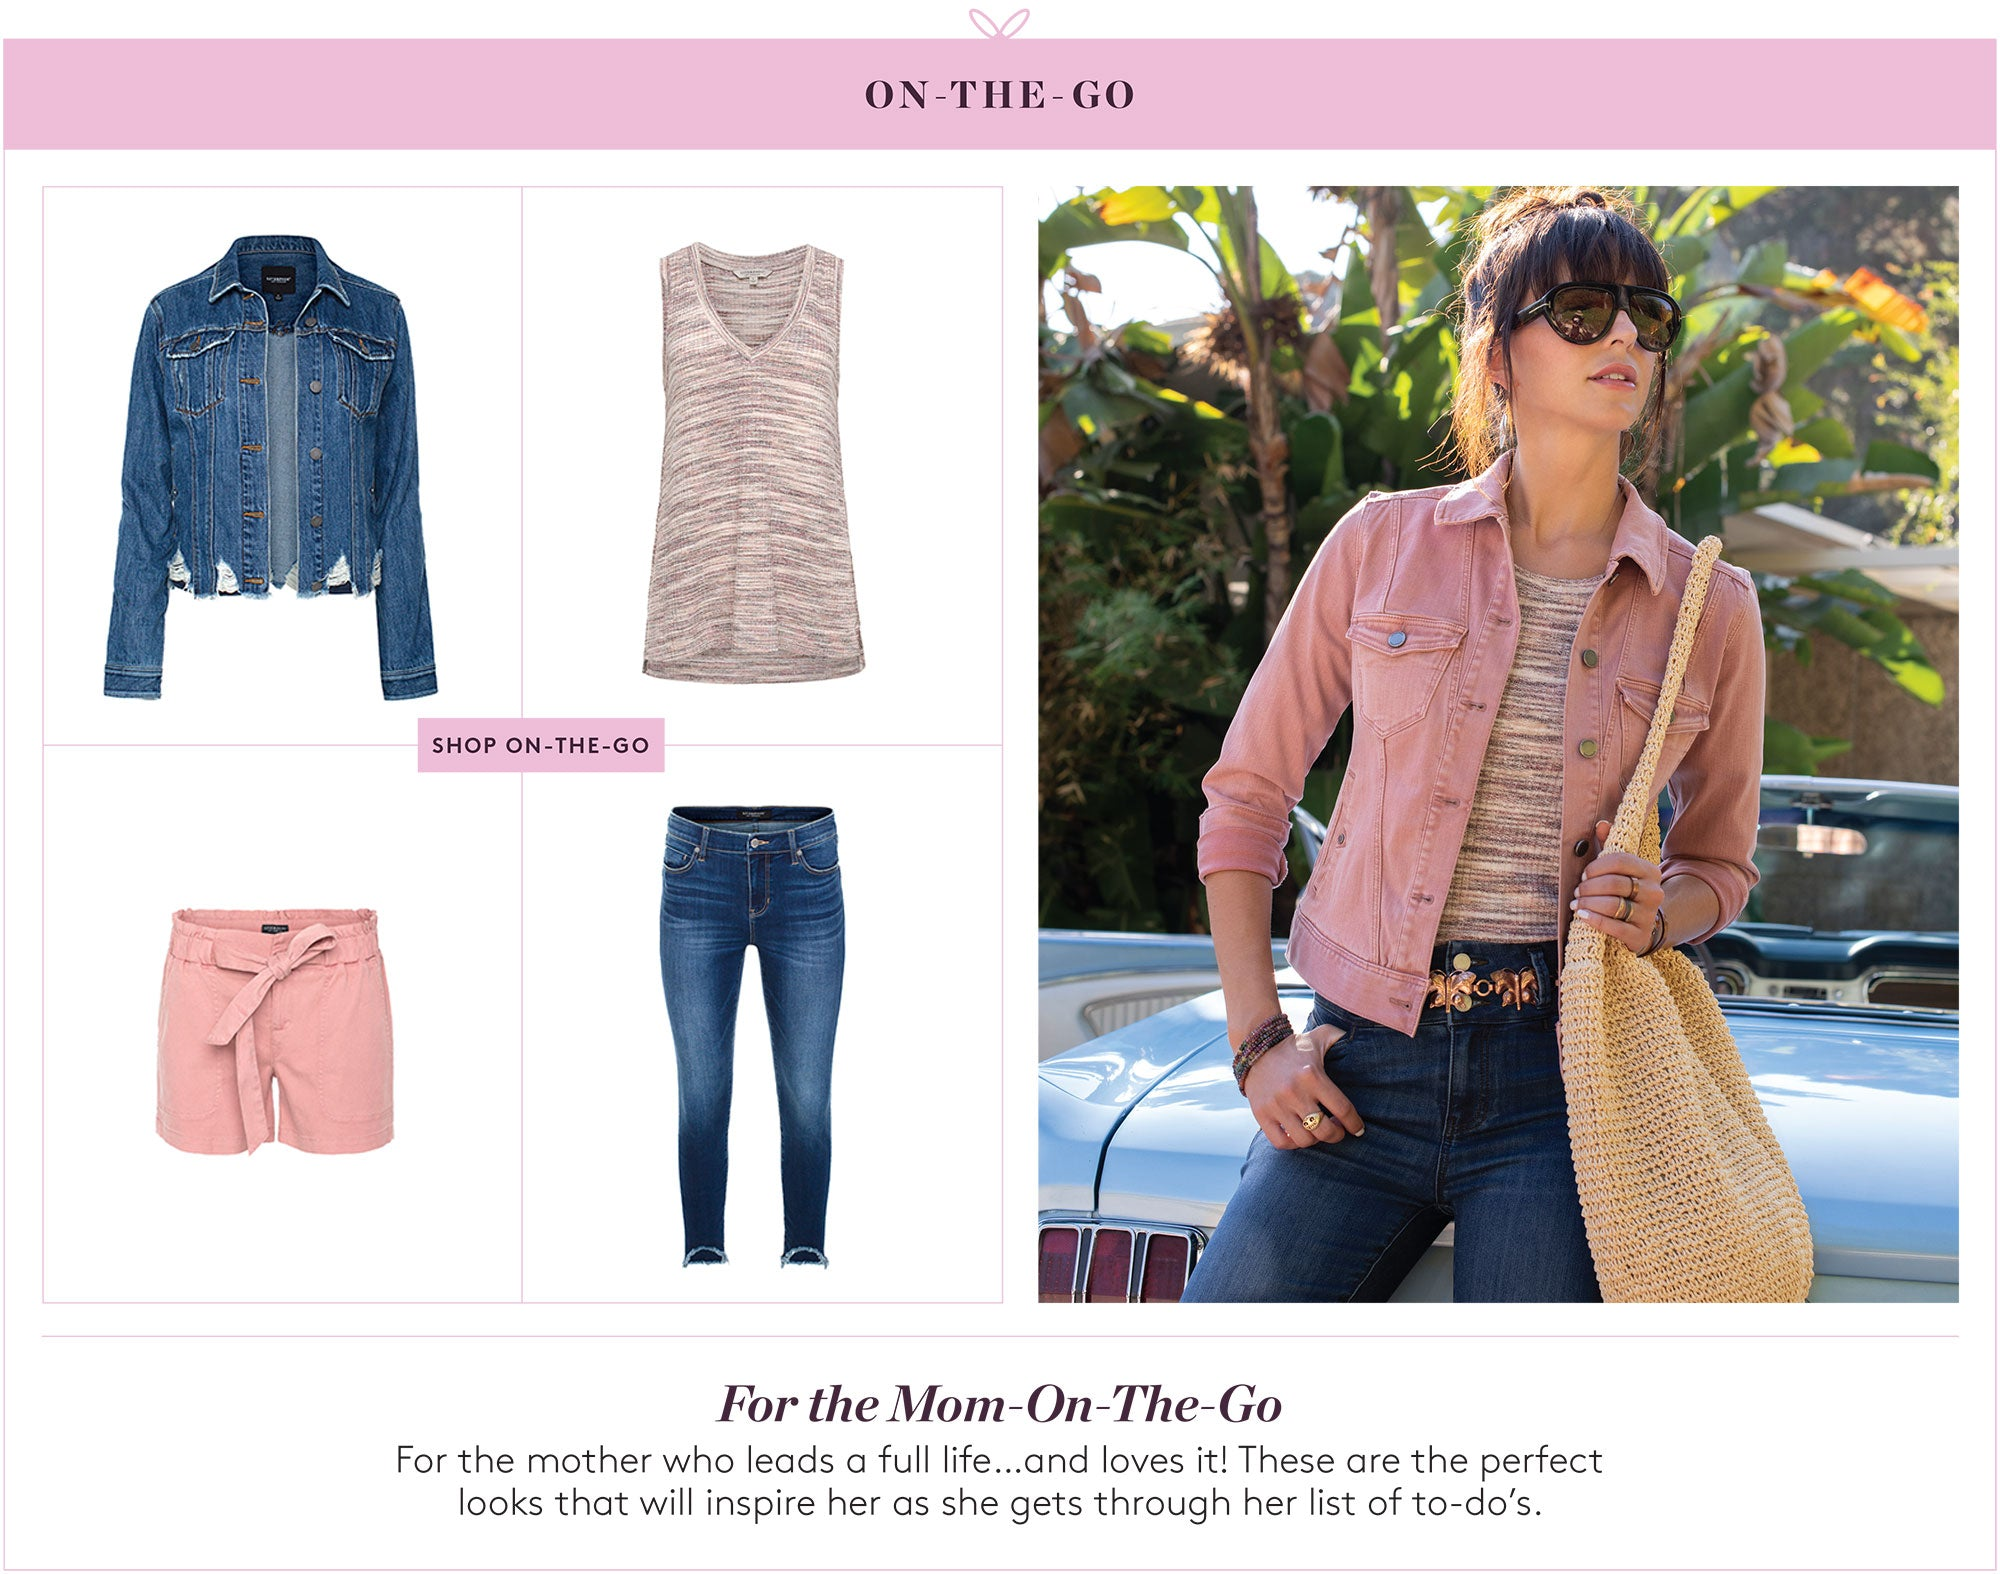 For the Mom-On-The-Go: For the mother who leads a full life...and loves it! These are the perfect looks that will inspire her as she gets through her list of to-do's.